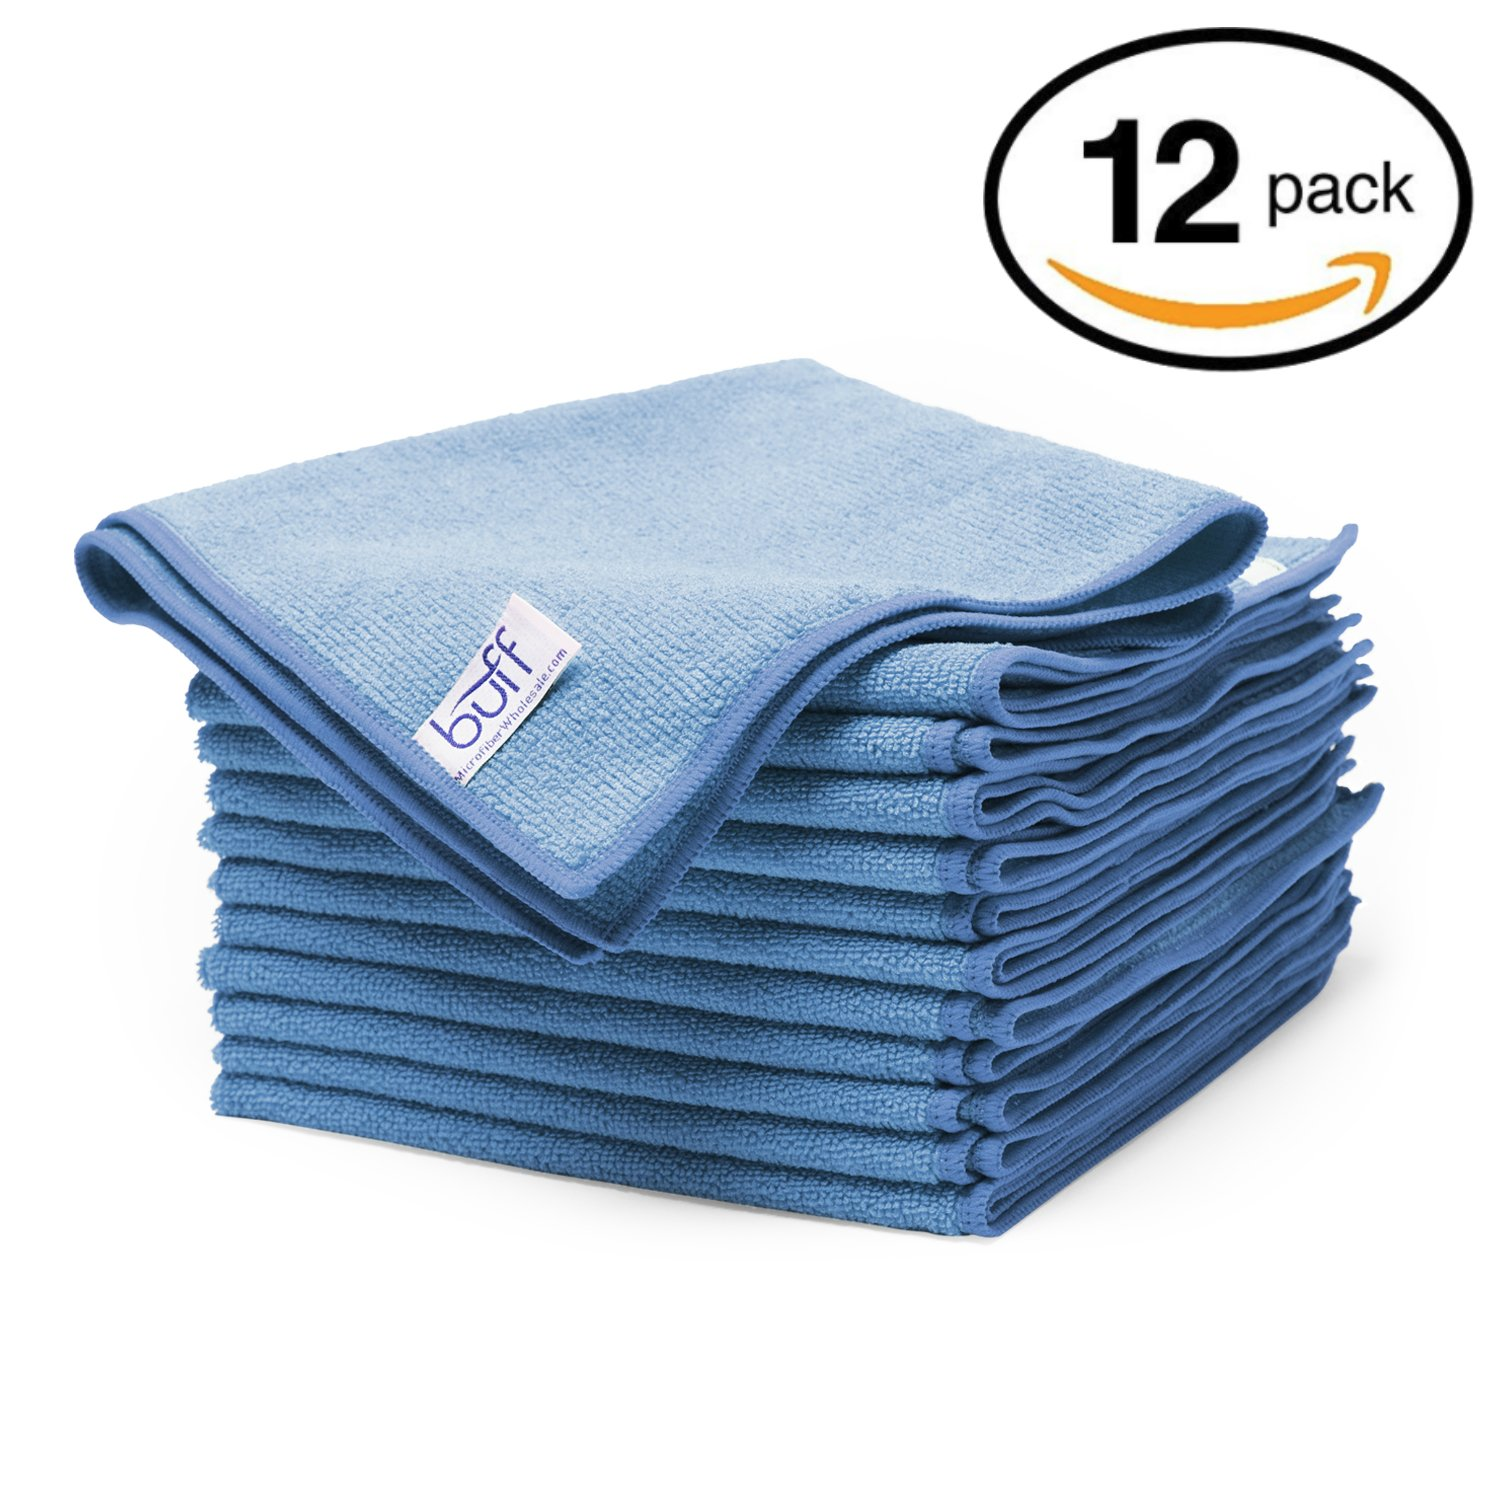 "Blue Microfiber Cleaning Cloths | Best Towels for Dusting, Scrubbing, Polishing, Absorbing | Large 16"" x 16"" Buff Pro Multi-Surface Microfiber Towel - 12 Pack"